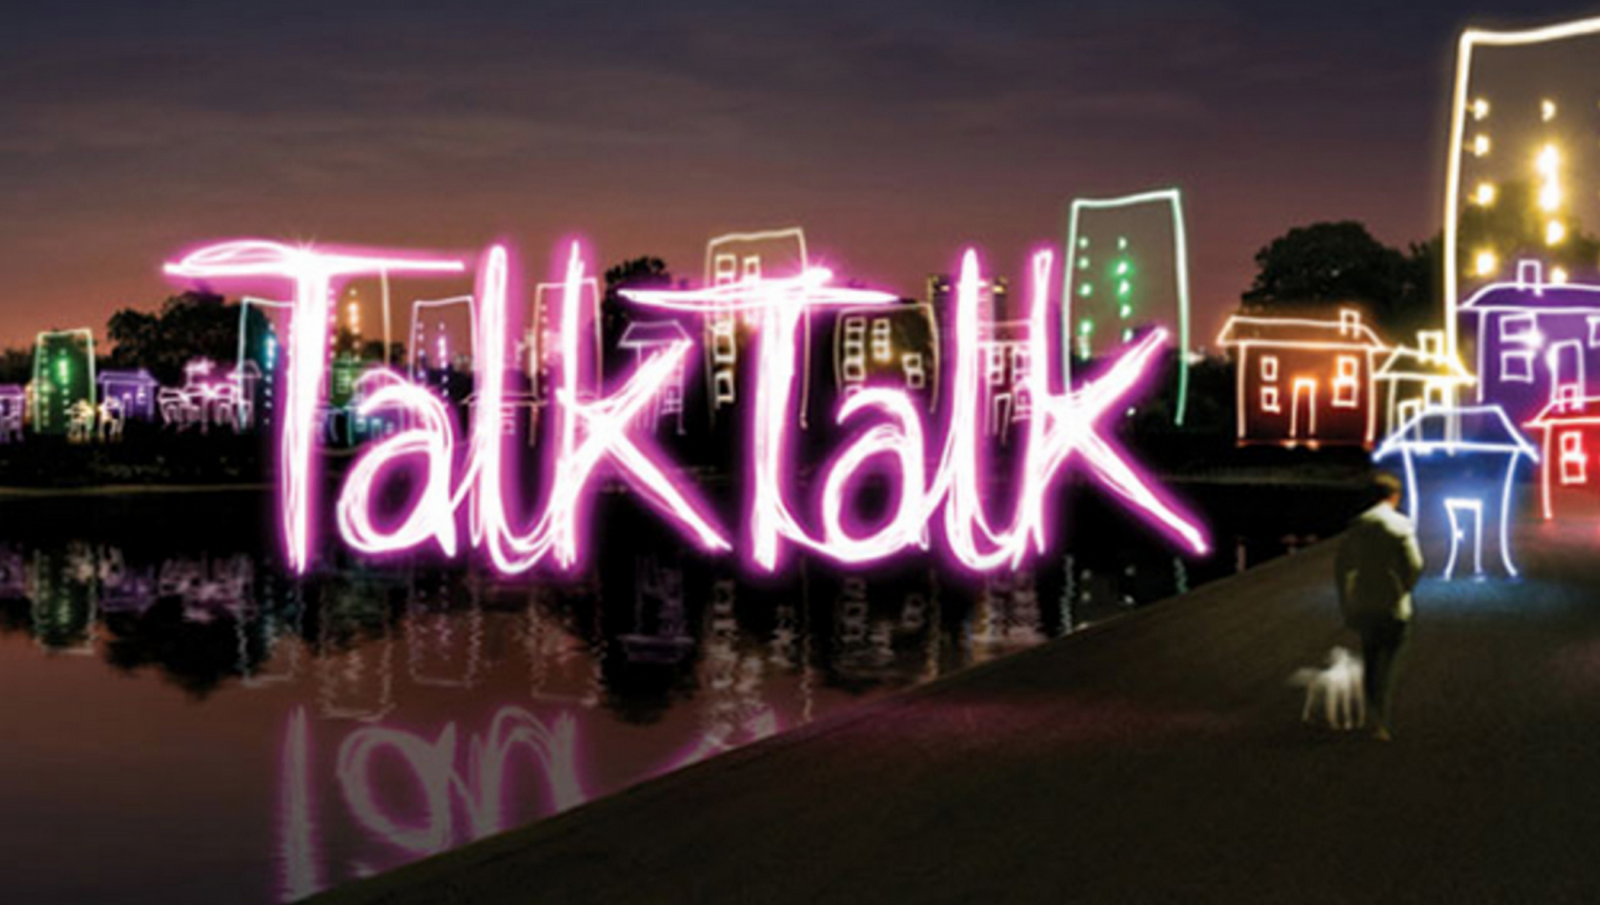 TalkTalk customer data breach